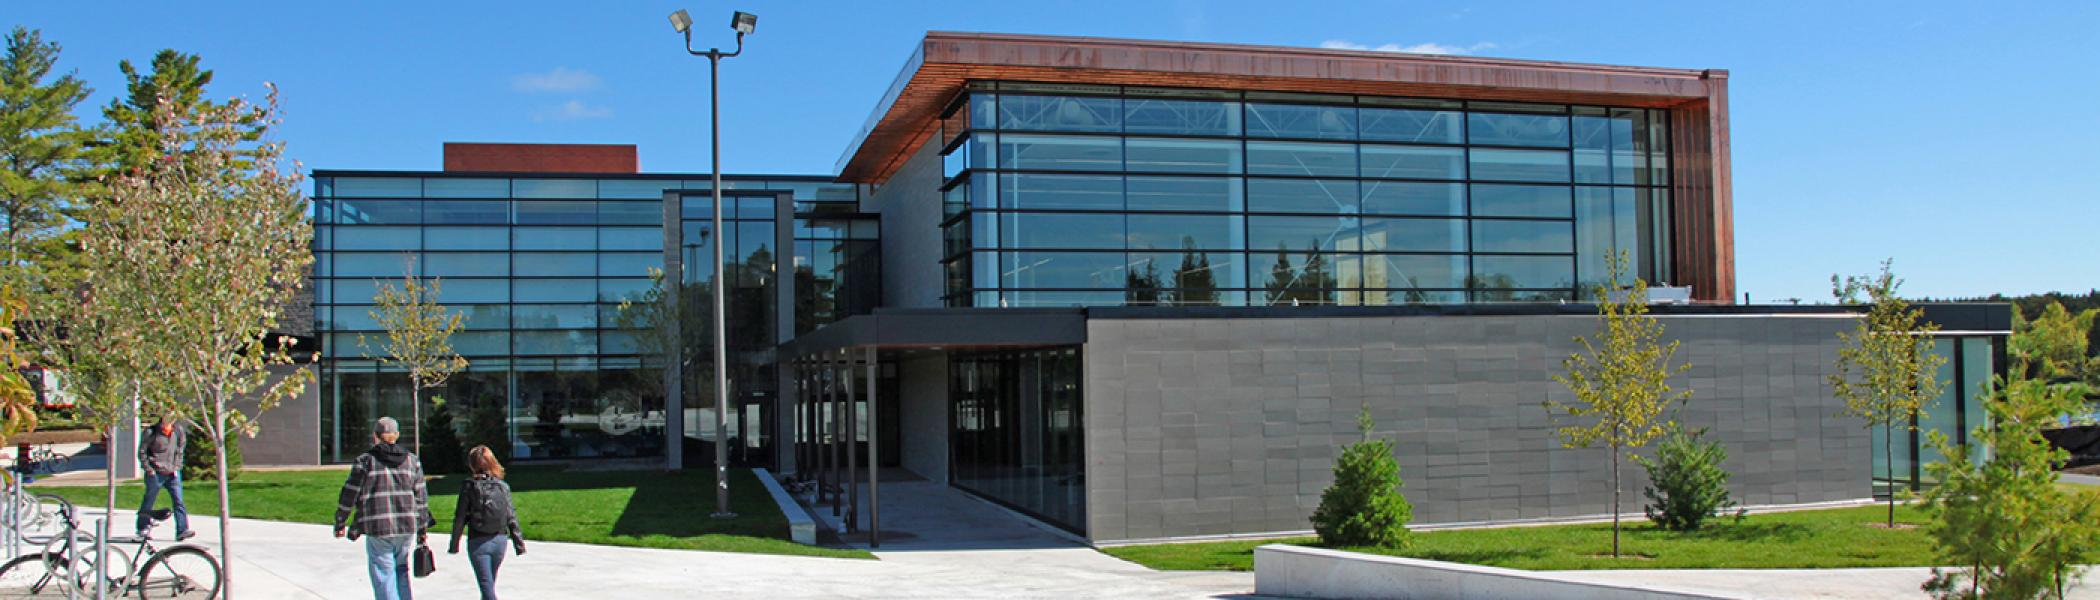 Exterior view of the Athletics Centre